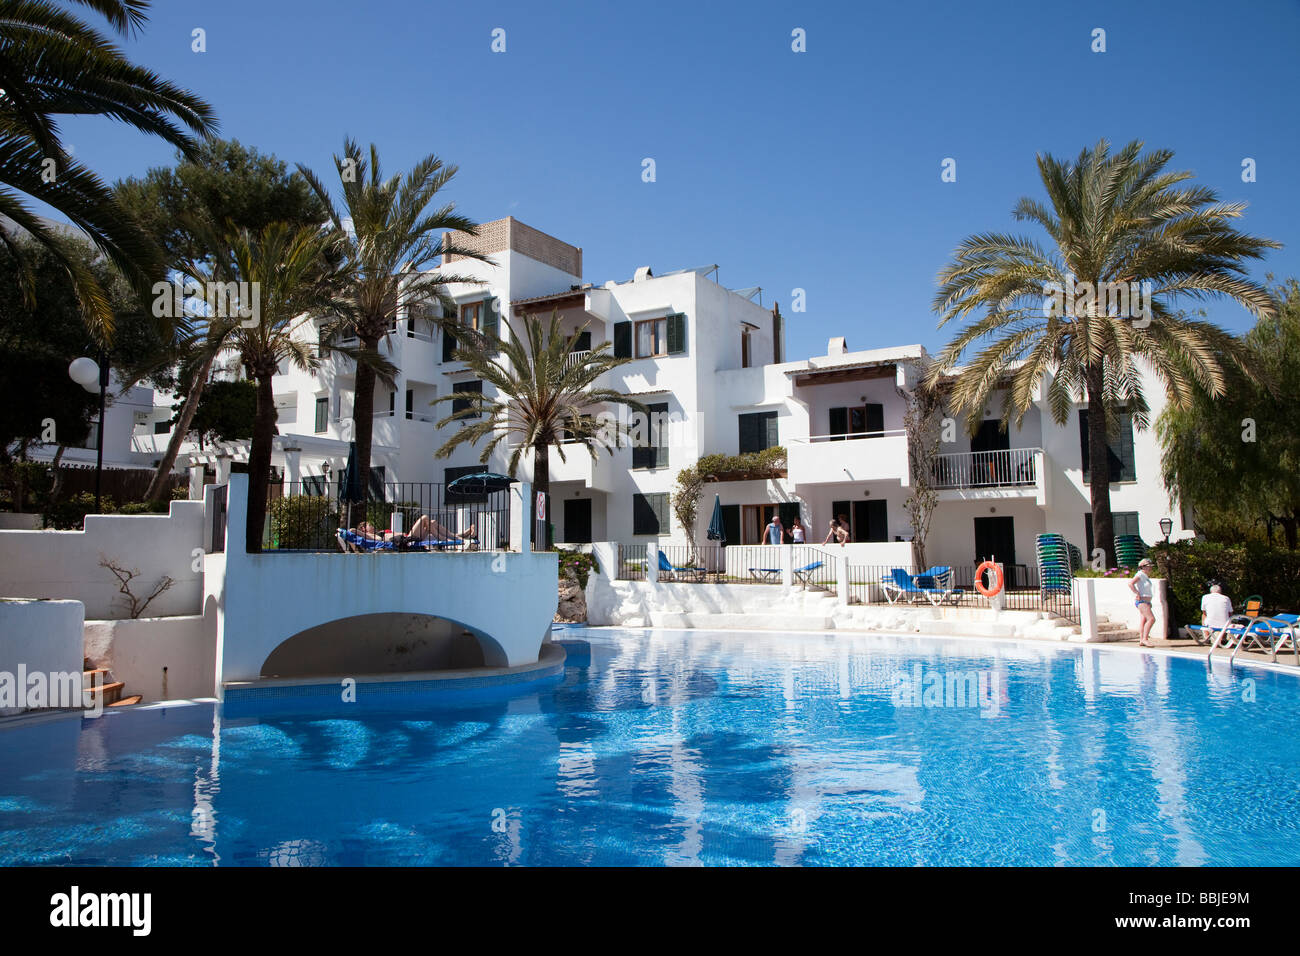 Modern hotel accommodatiion and swimming pool in holiday resort Cala d'Or Mallorca Spain - Stock Image